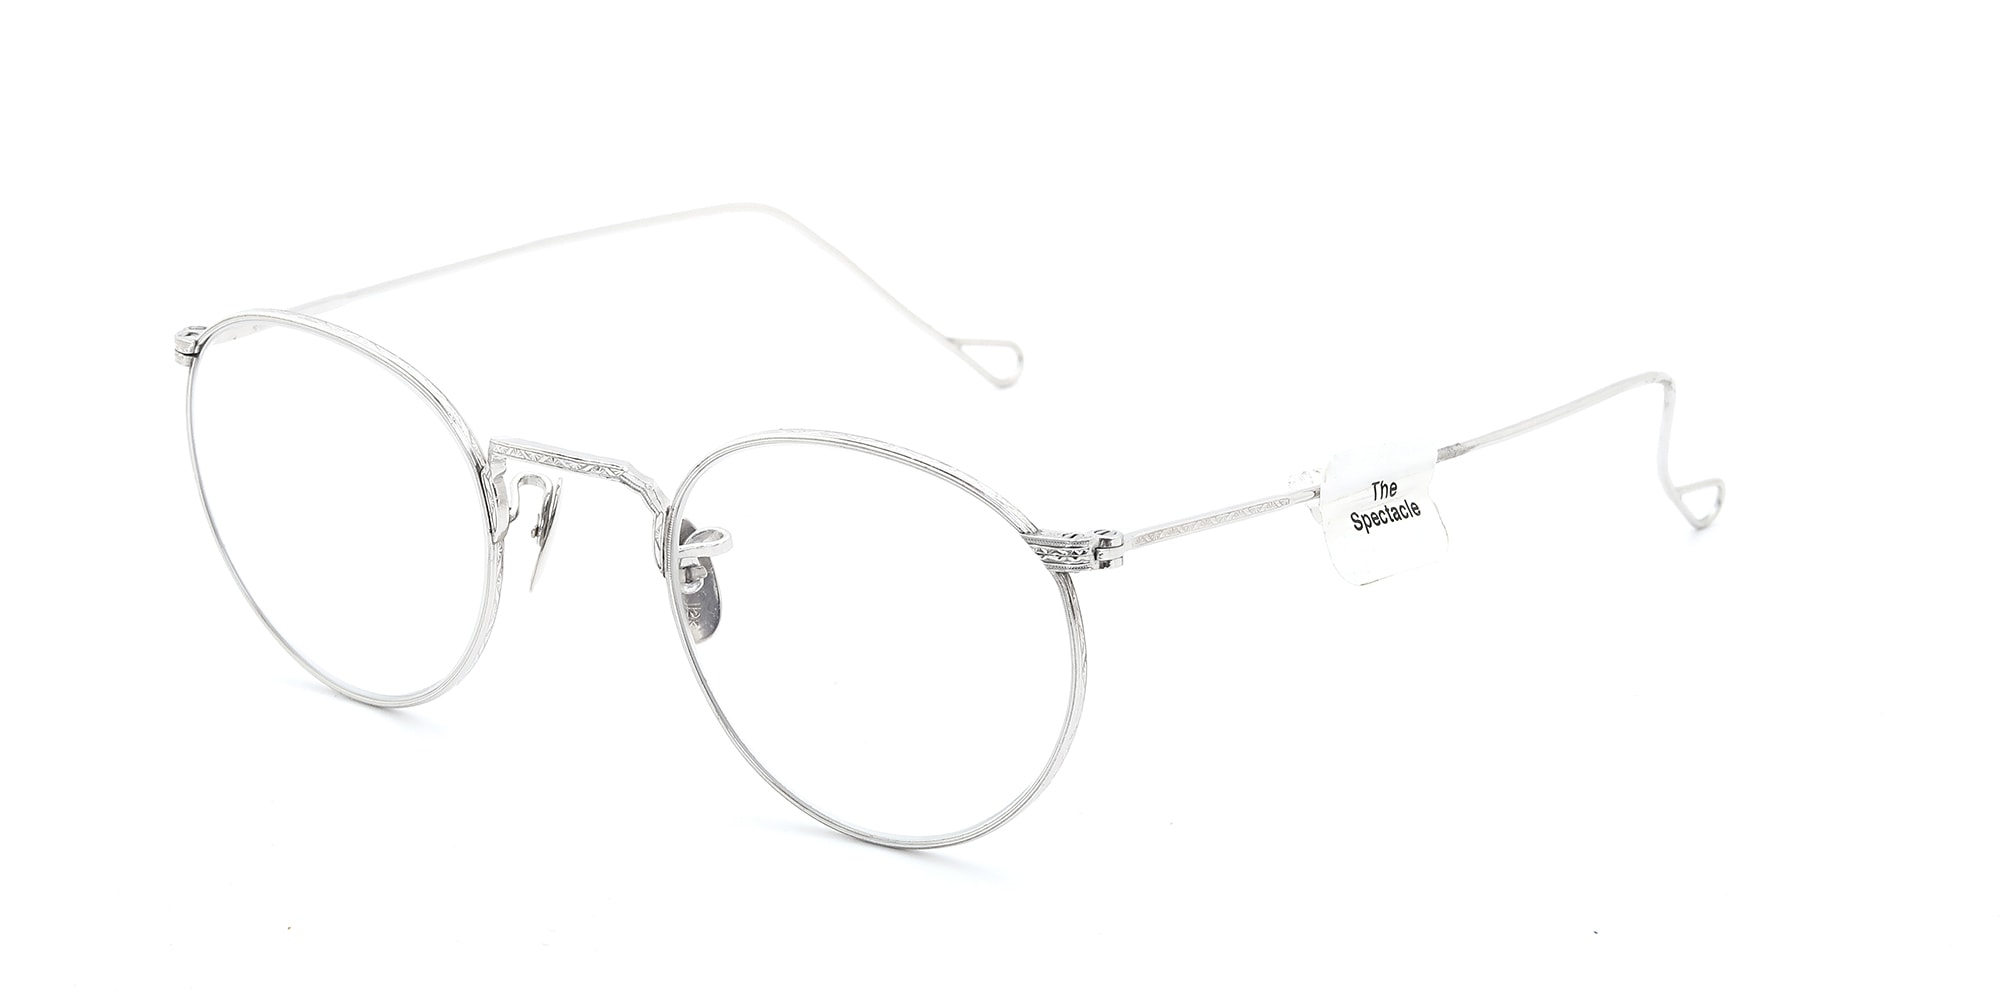 The Spectacle メガネ 1930s-40s American Optical Full-Frame Ful-Vue WG 44-22 イメージ2